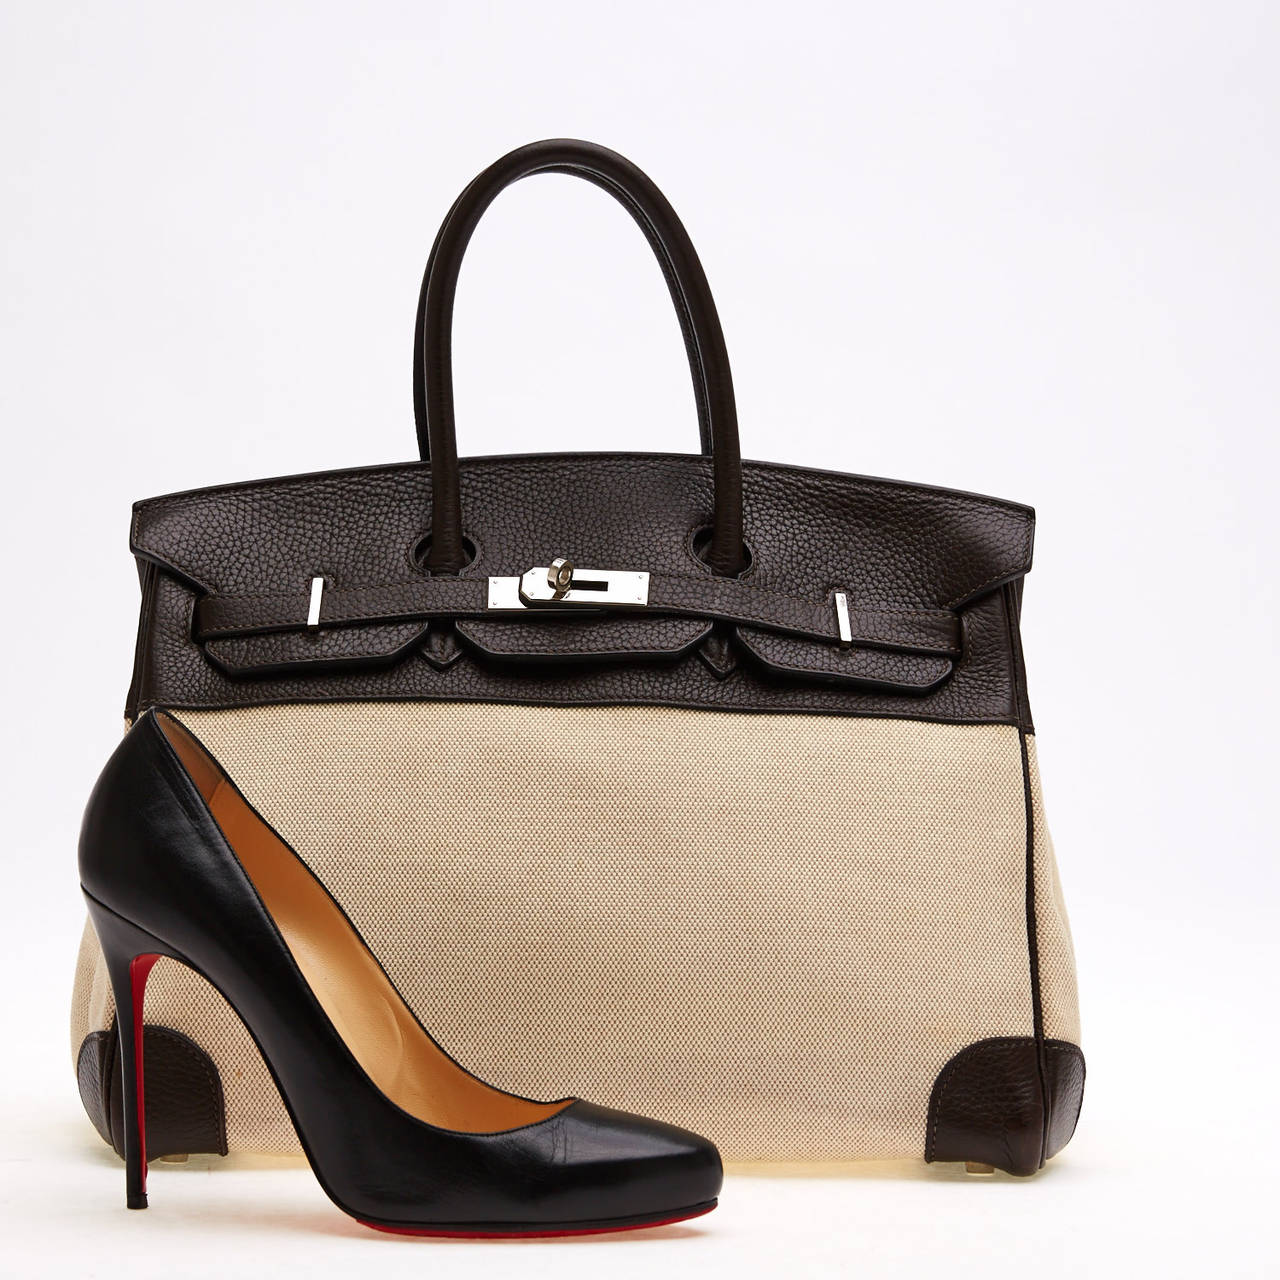 566b6d3698 This authentic Hermes Birkin Canvas and Leather 35 is quite distinct yet  understated. It is